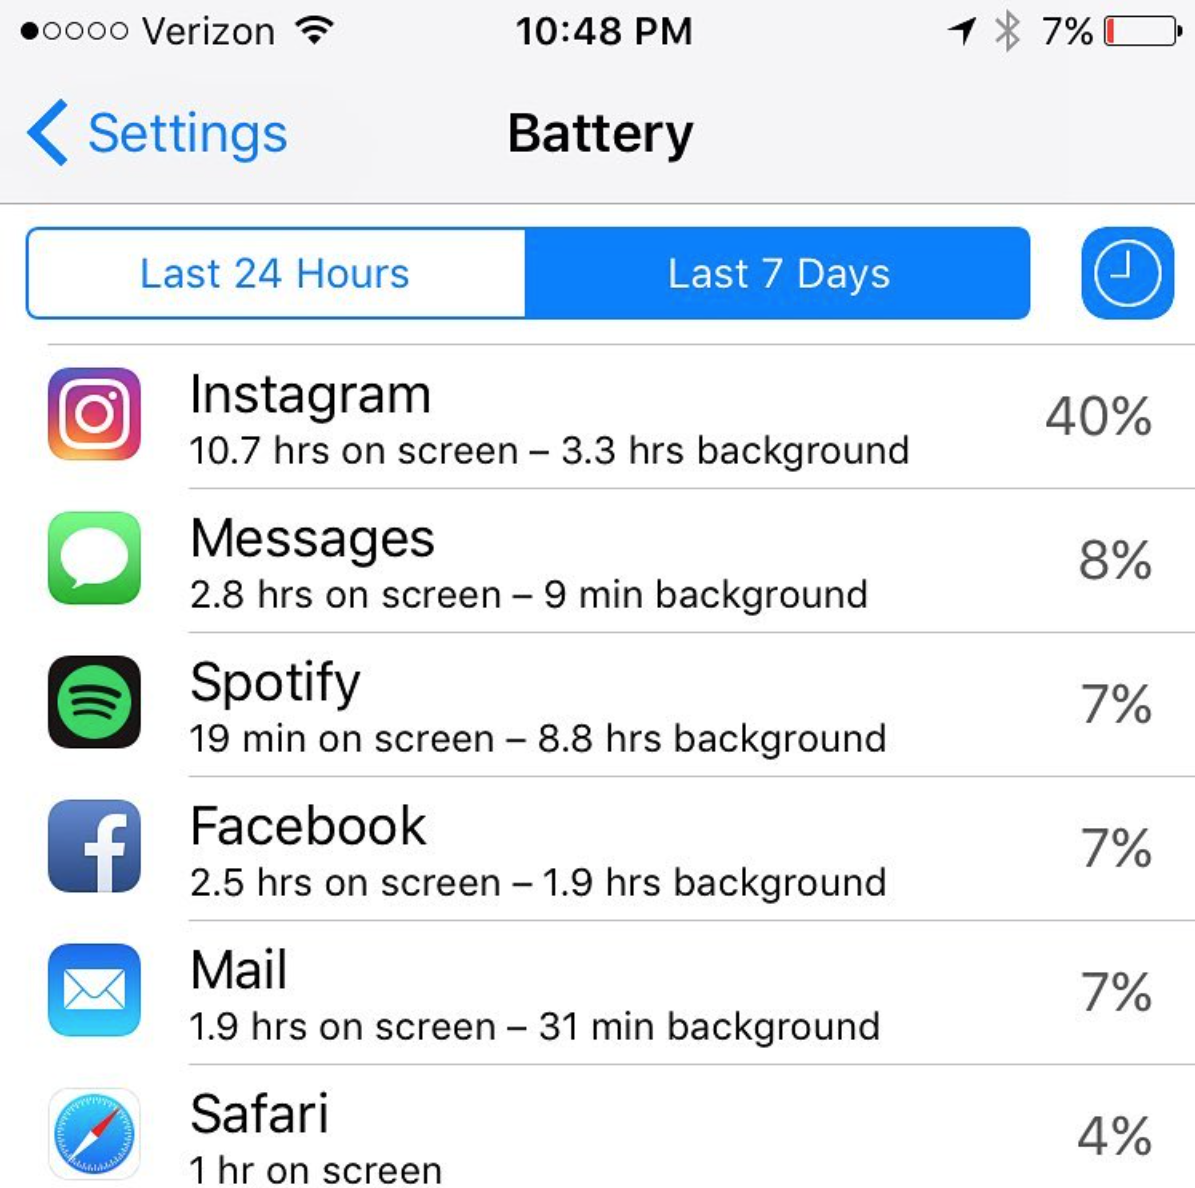 Imagine what I could have done with those 11 hours! 7% battery probably because of copious amounts of mindless Instagram scrolling...